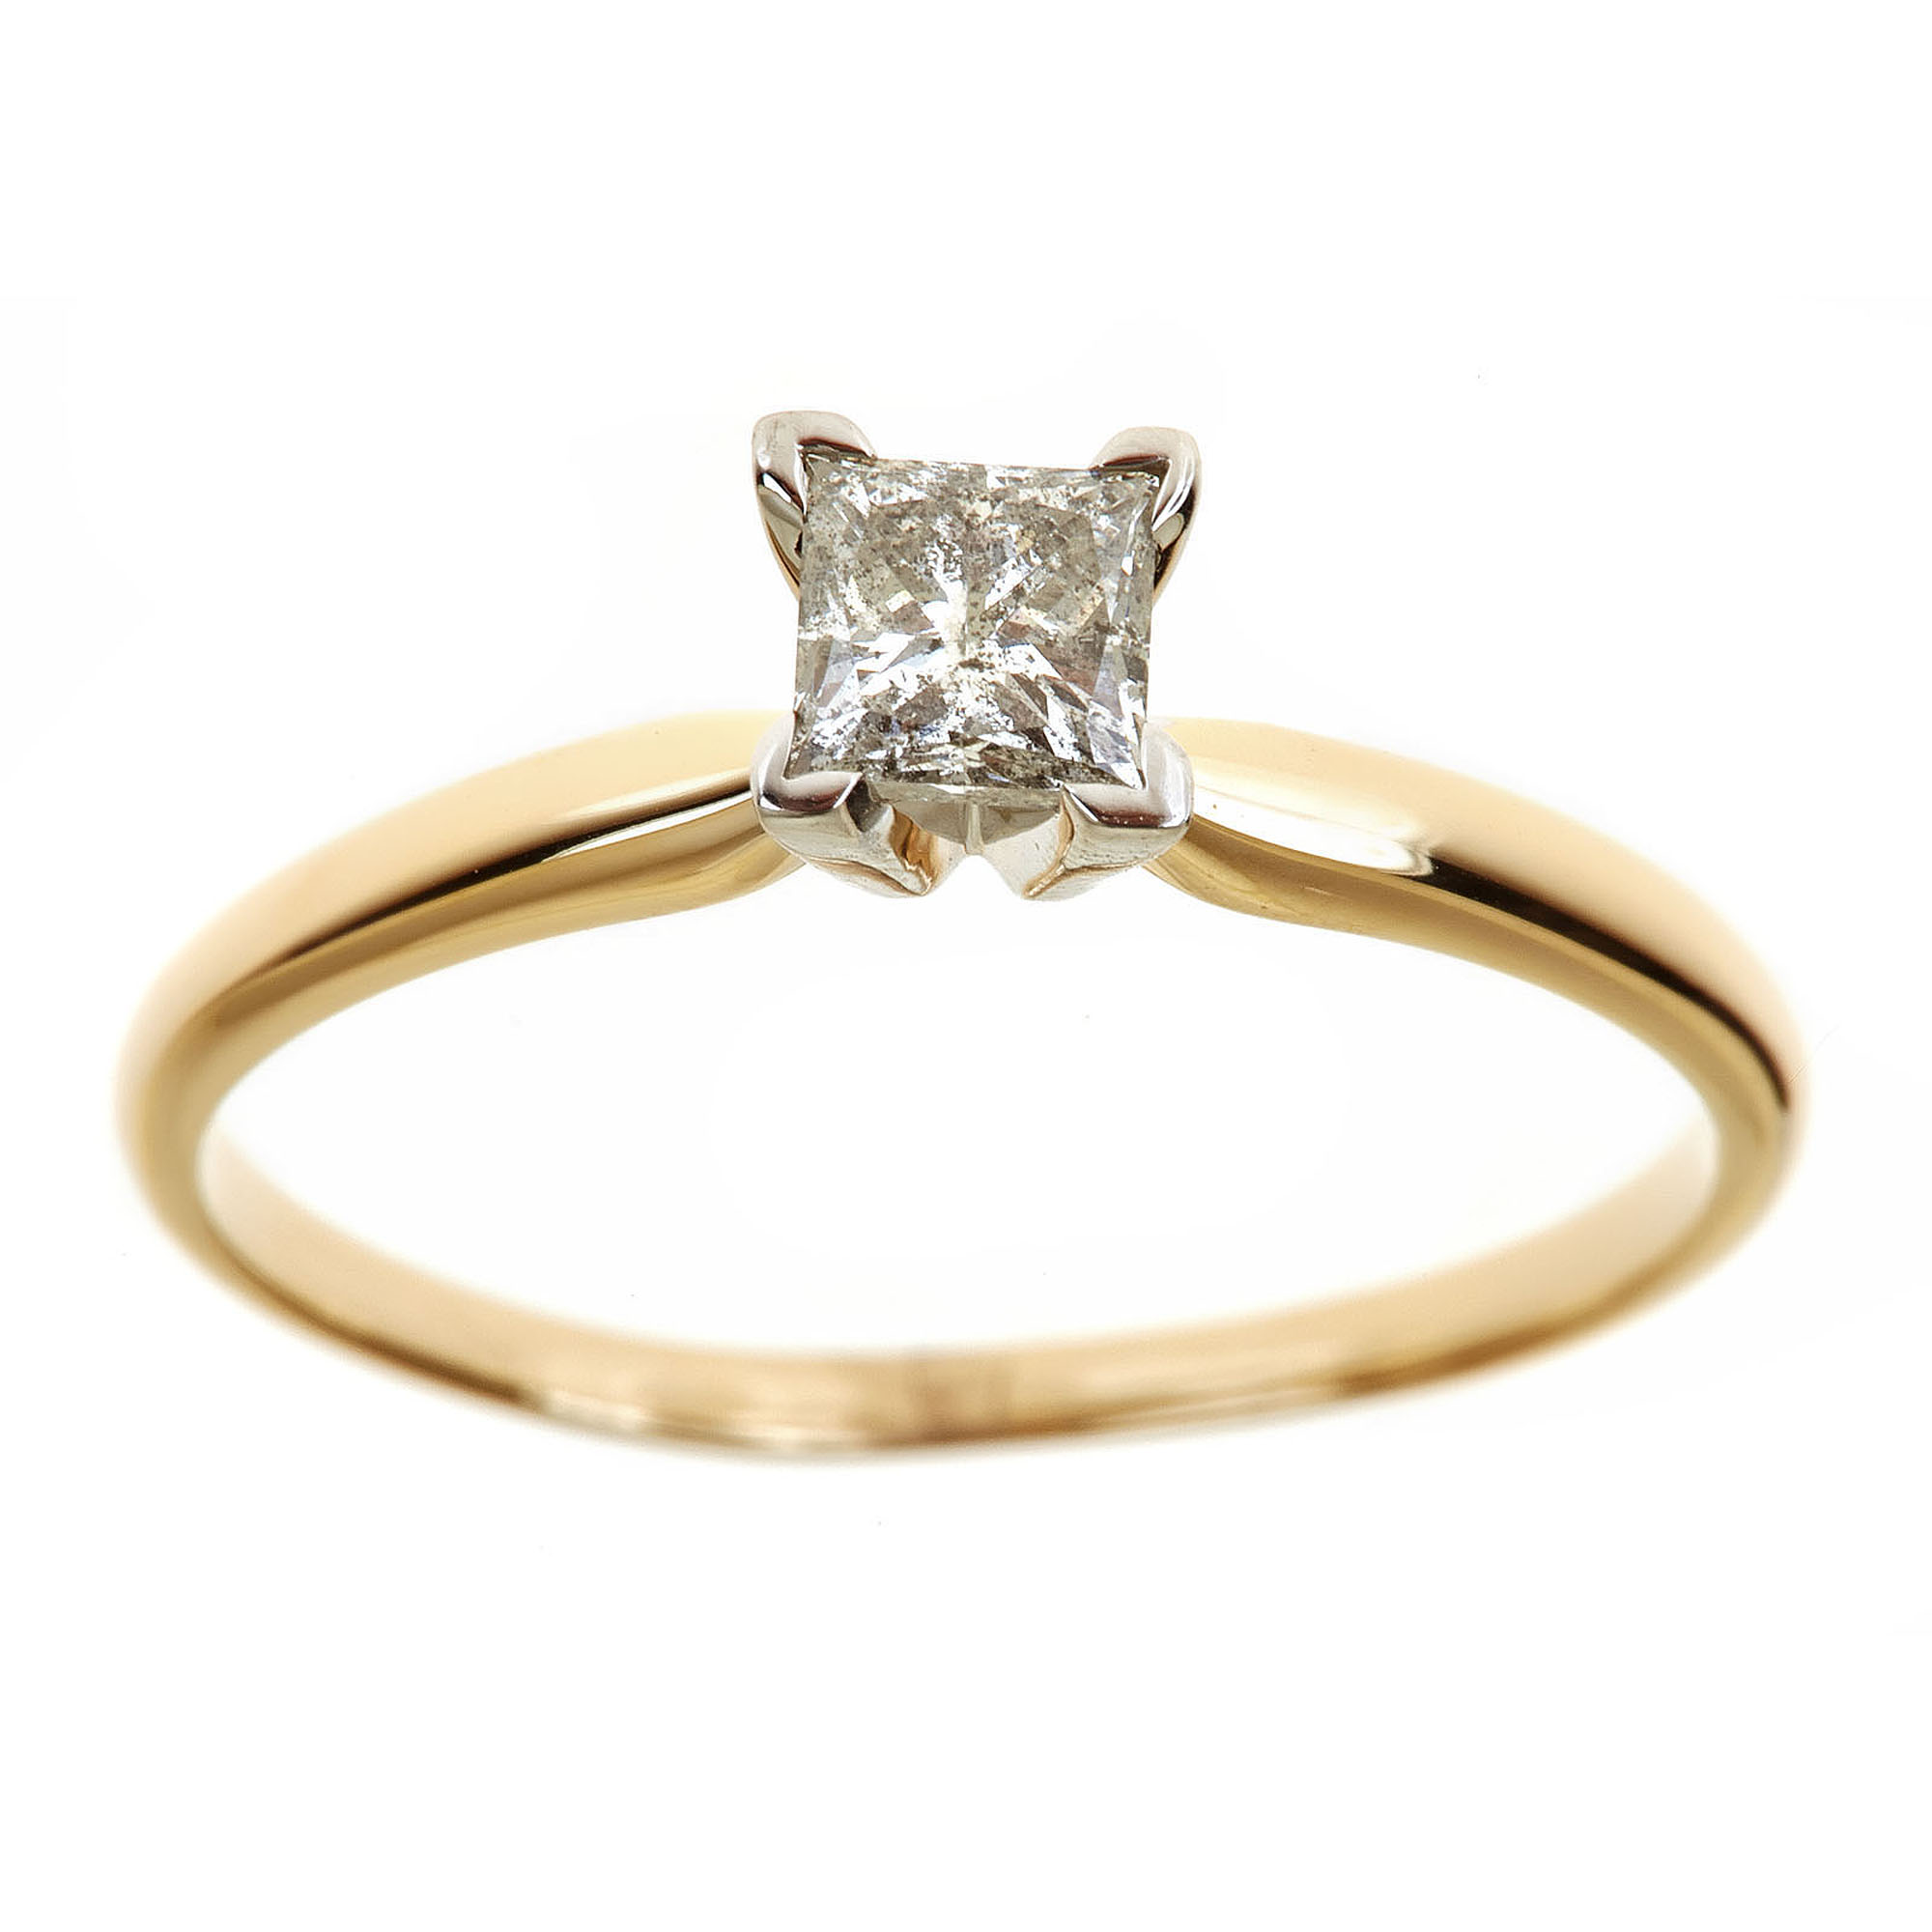 1 Carat T.W. Princess White Diamond 14kt Yellow Gold Solitaire Ring, IGL certified by Generic